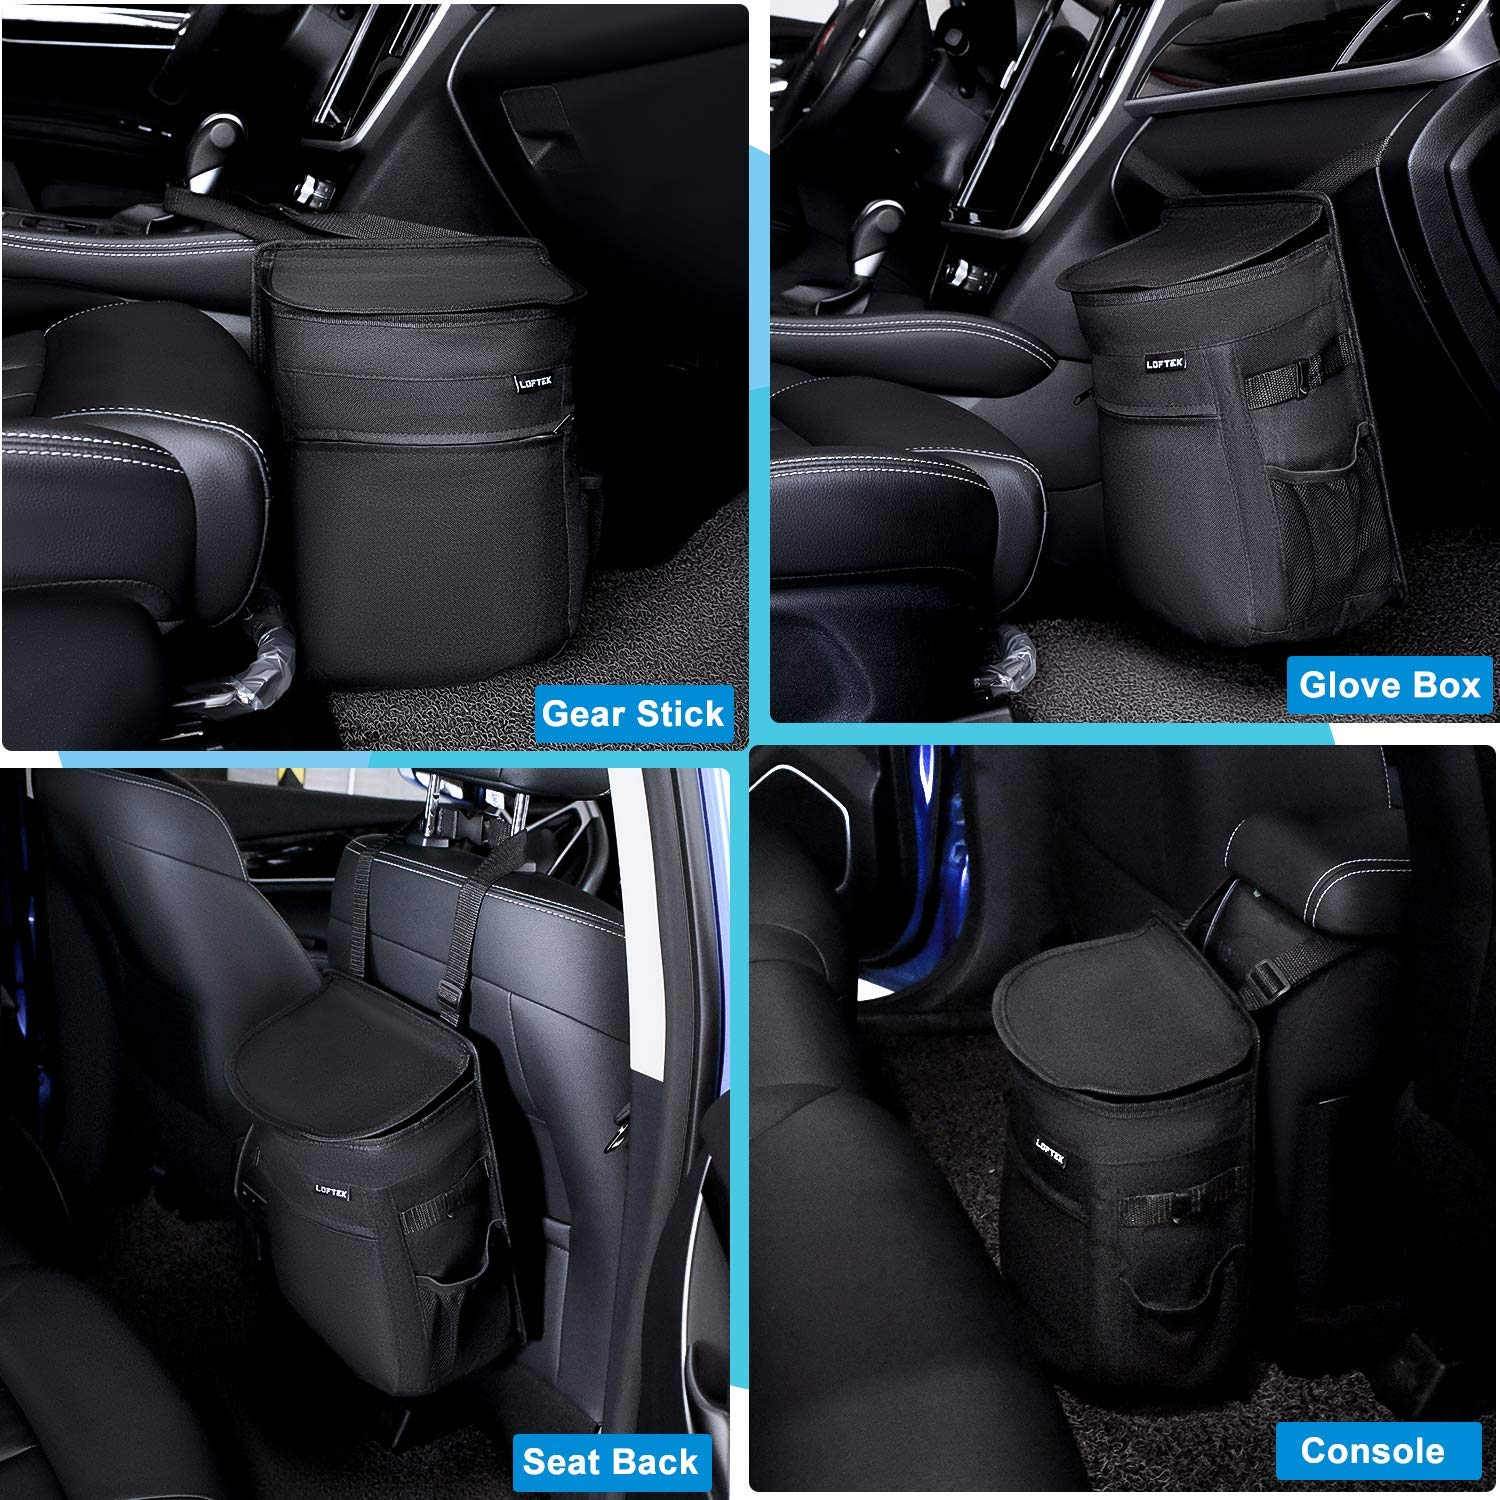 LOFTEK Large Car Trash Can with Lid and Storage Pockets Trash Can for Car Front Seat Leak-Proof /& Waterproof Black